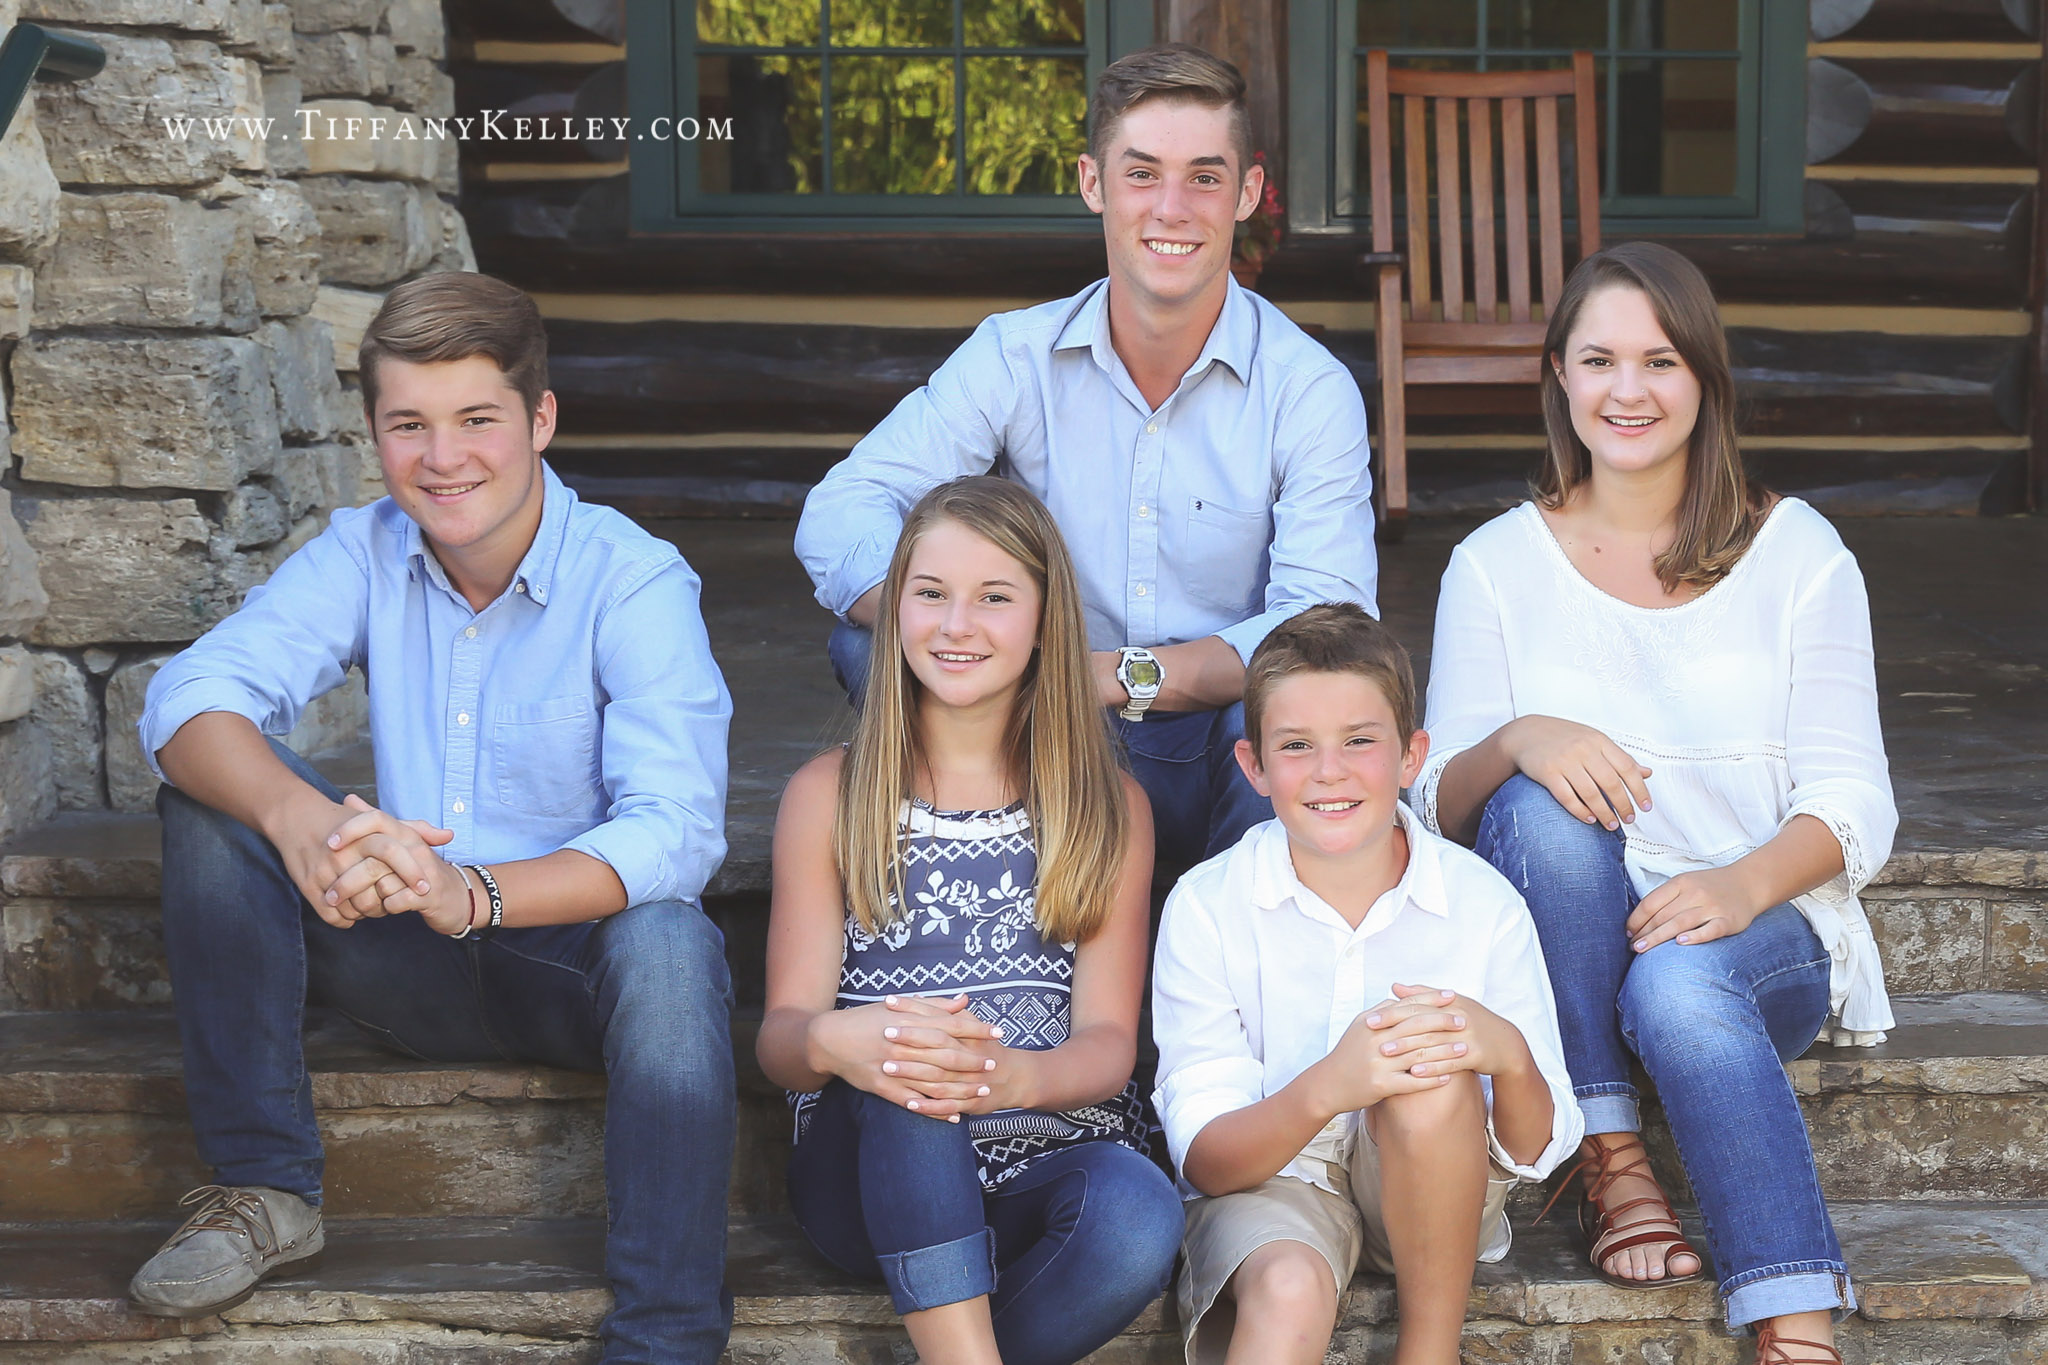 branson-missouri-family-portrait-photographer-tiffany-kelley-photography-11